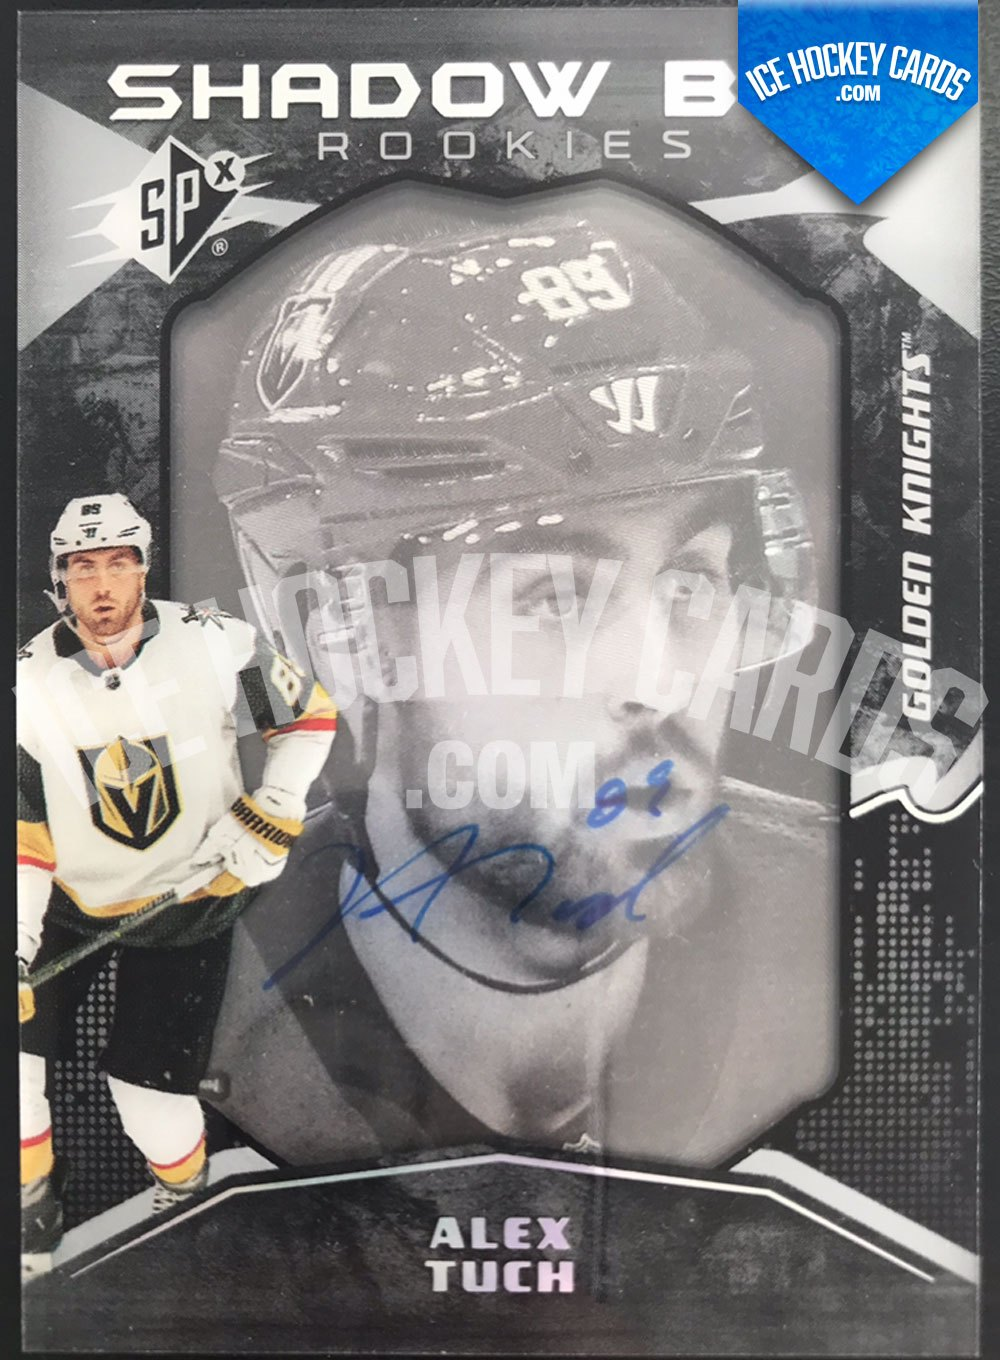 Upper Deck - SPx 17-18 - Alex Tuch Shadow Box Rookies Auto RC